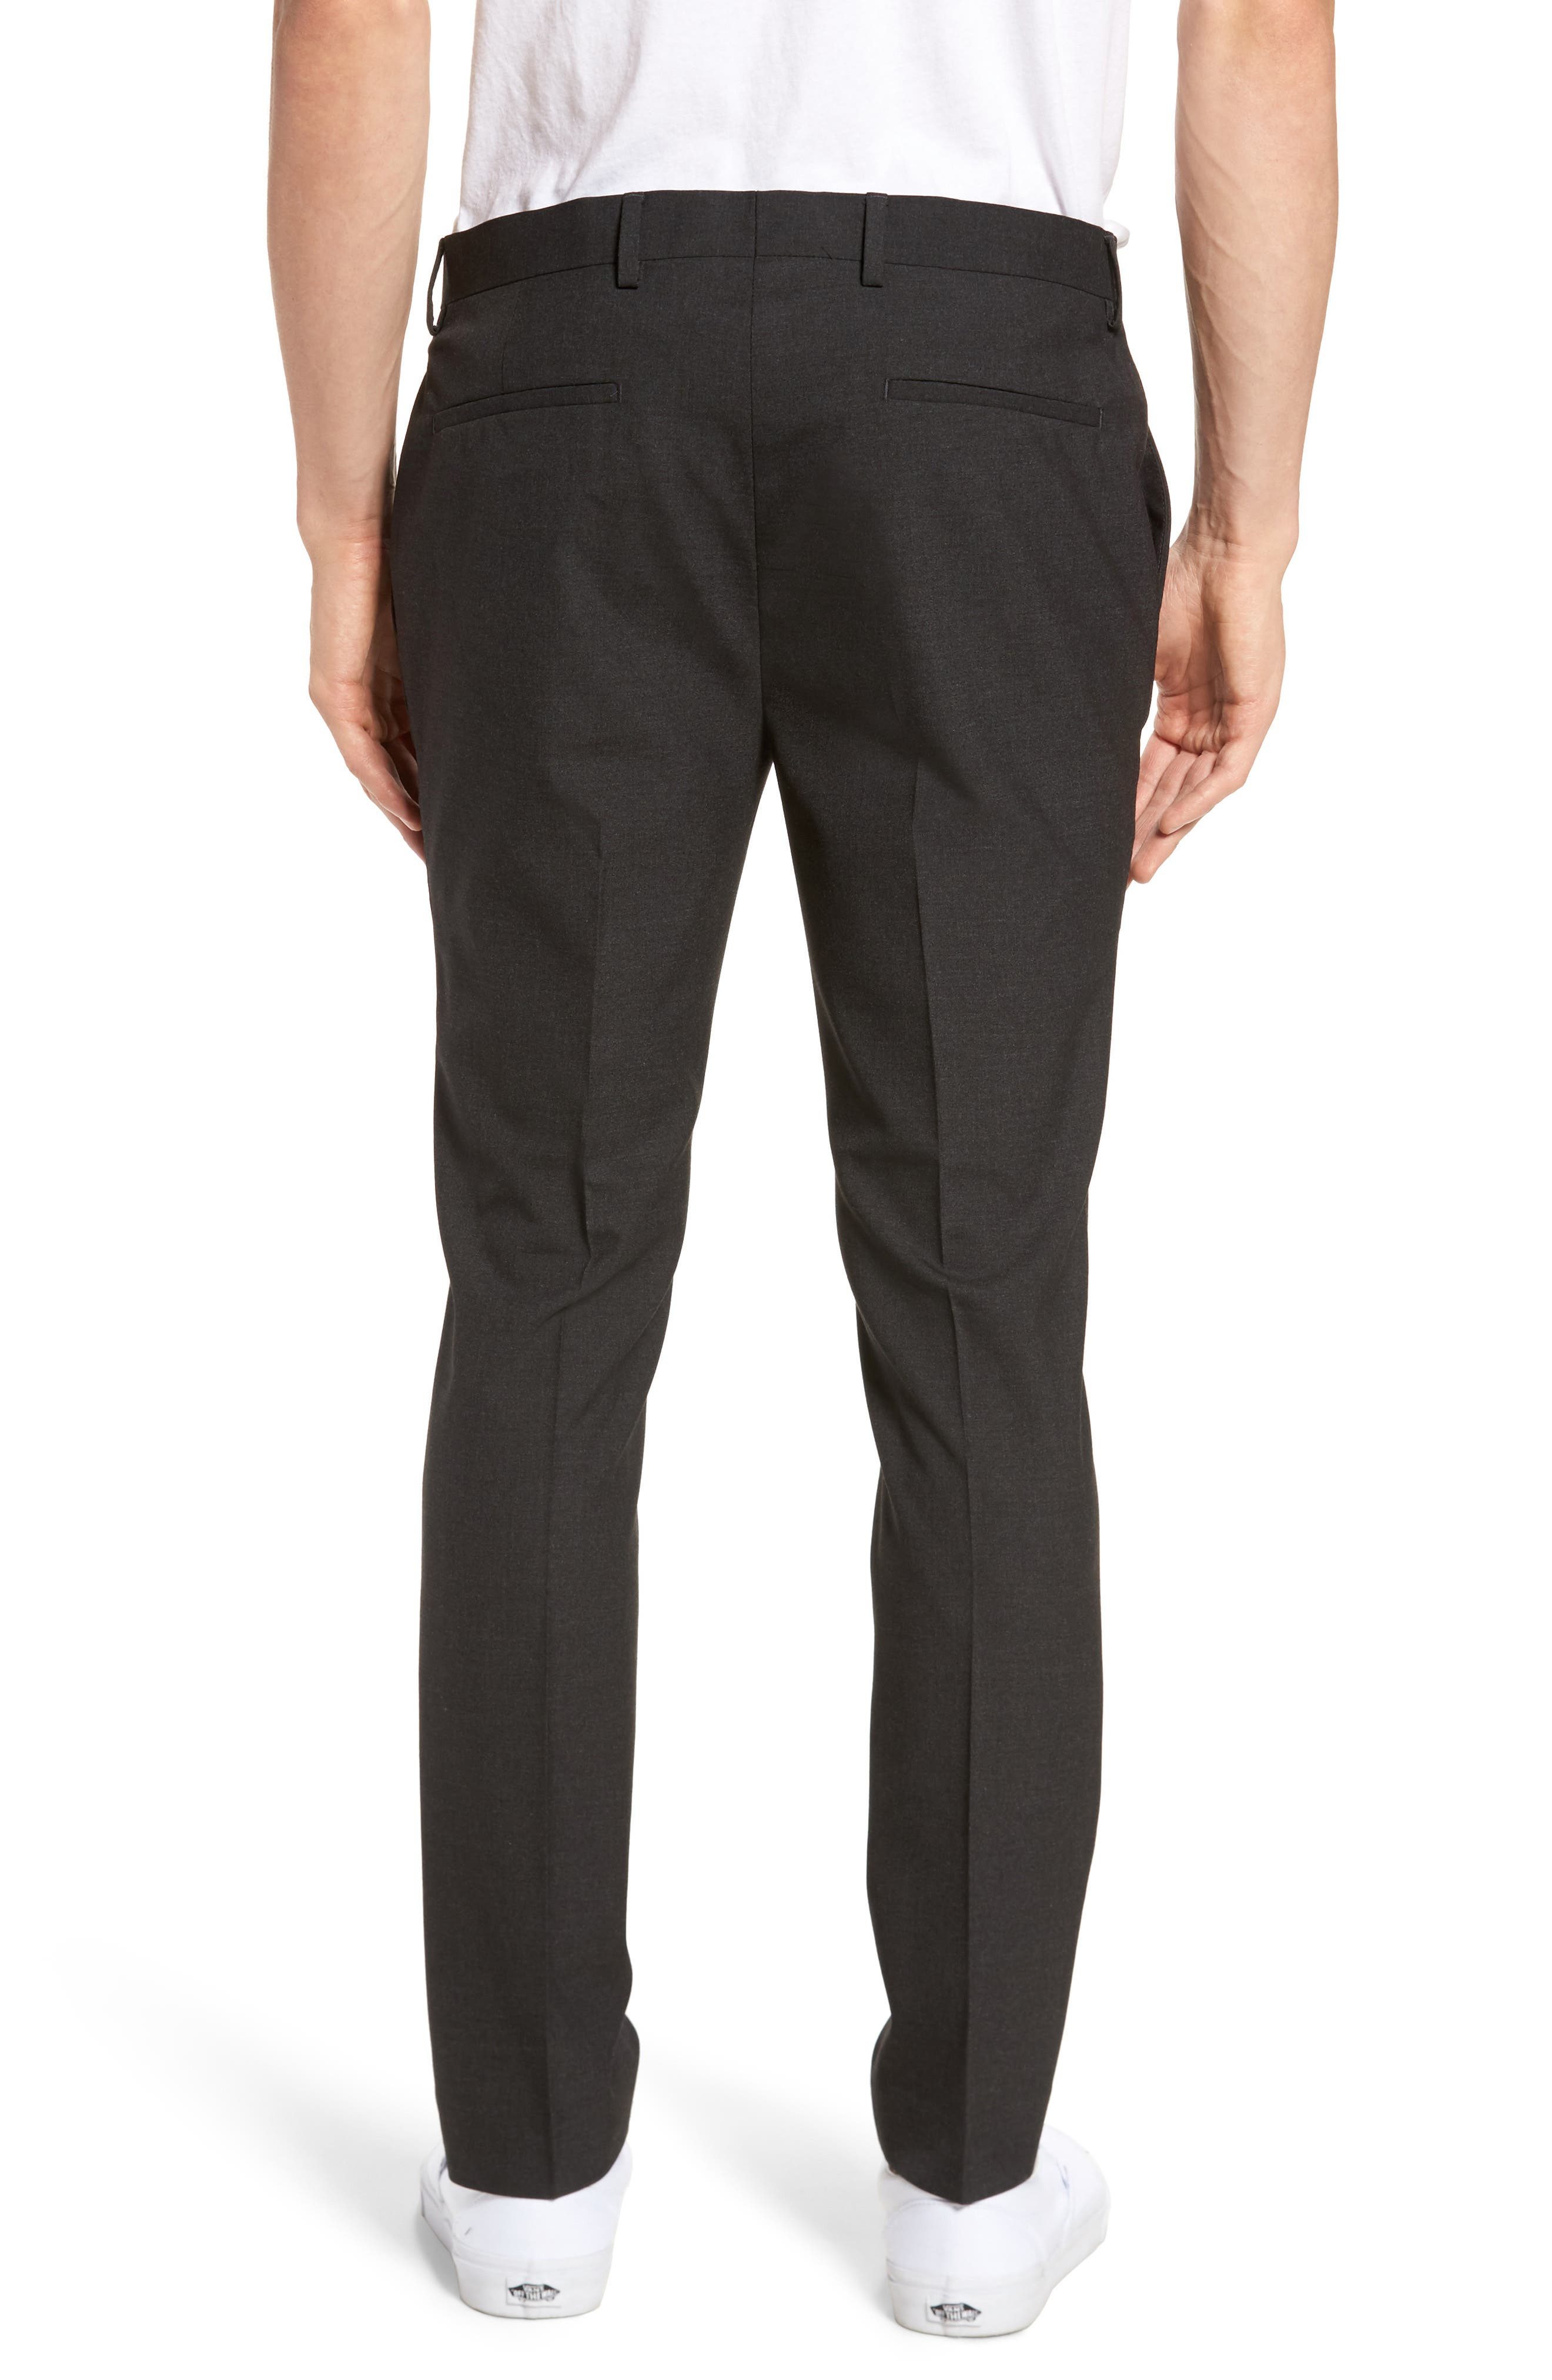 Black Skinny Fit Trousers,                             Alternate thumbnail 2, color,                             Charcoal